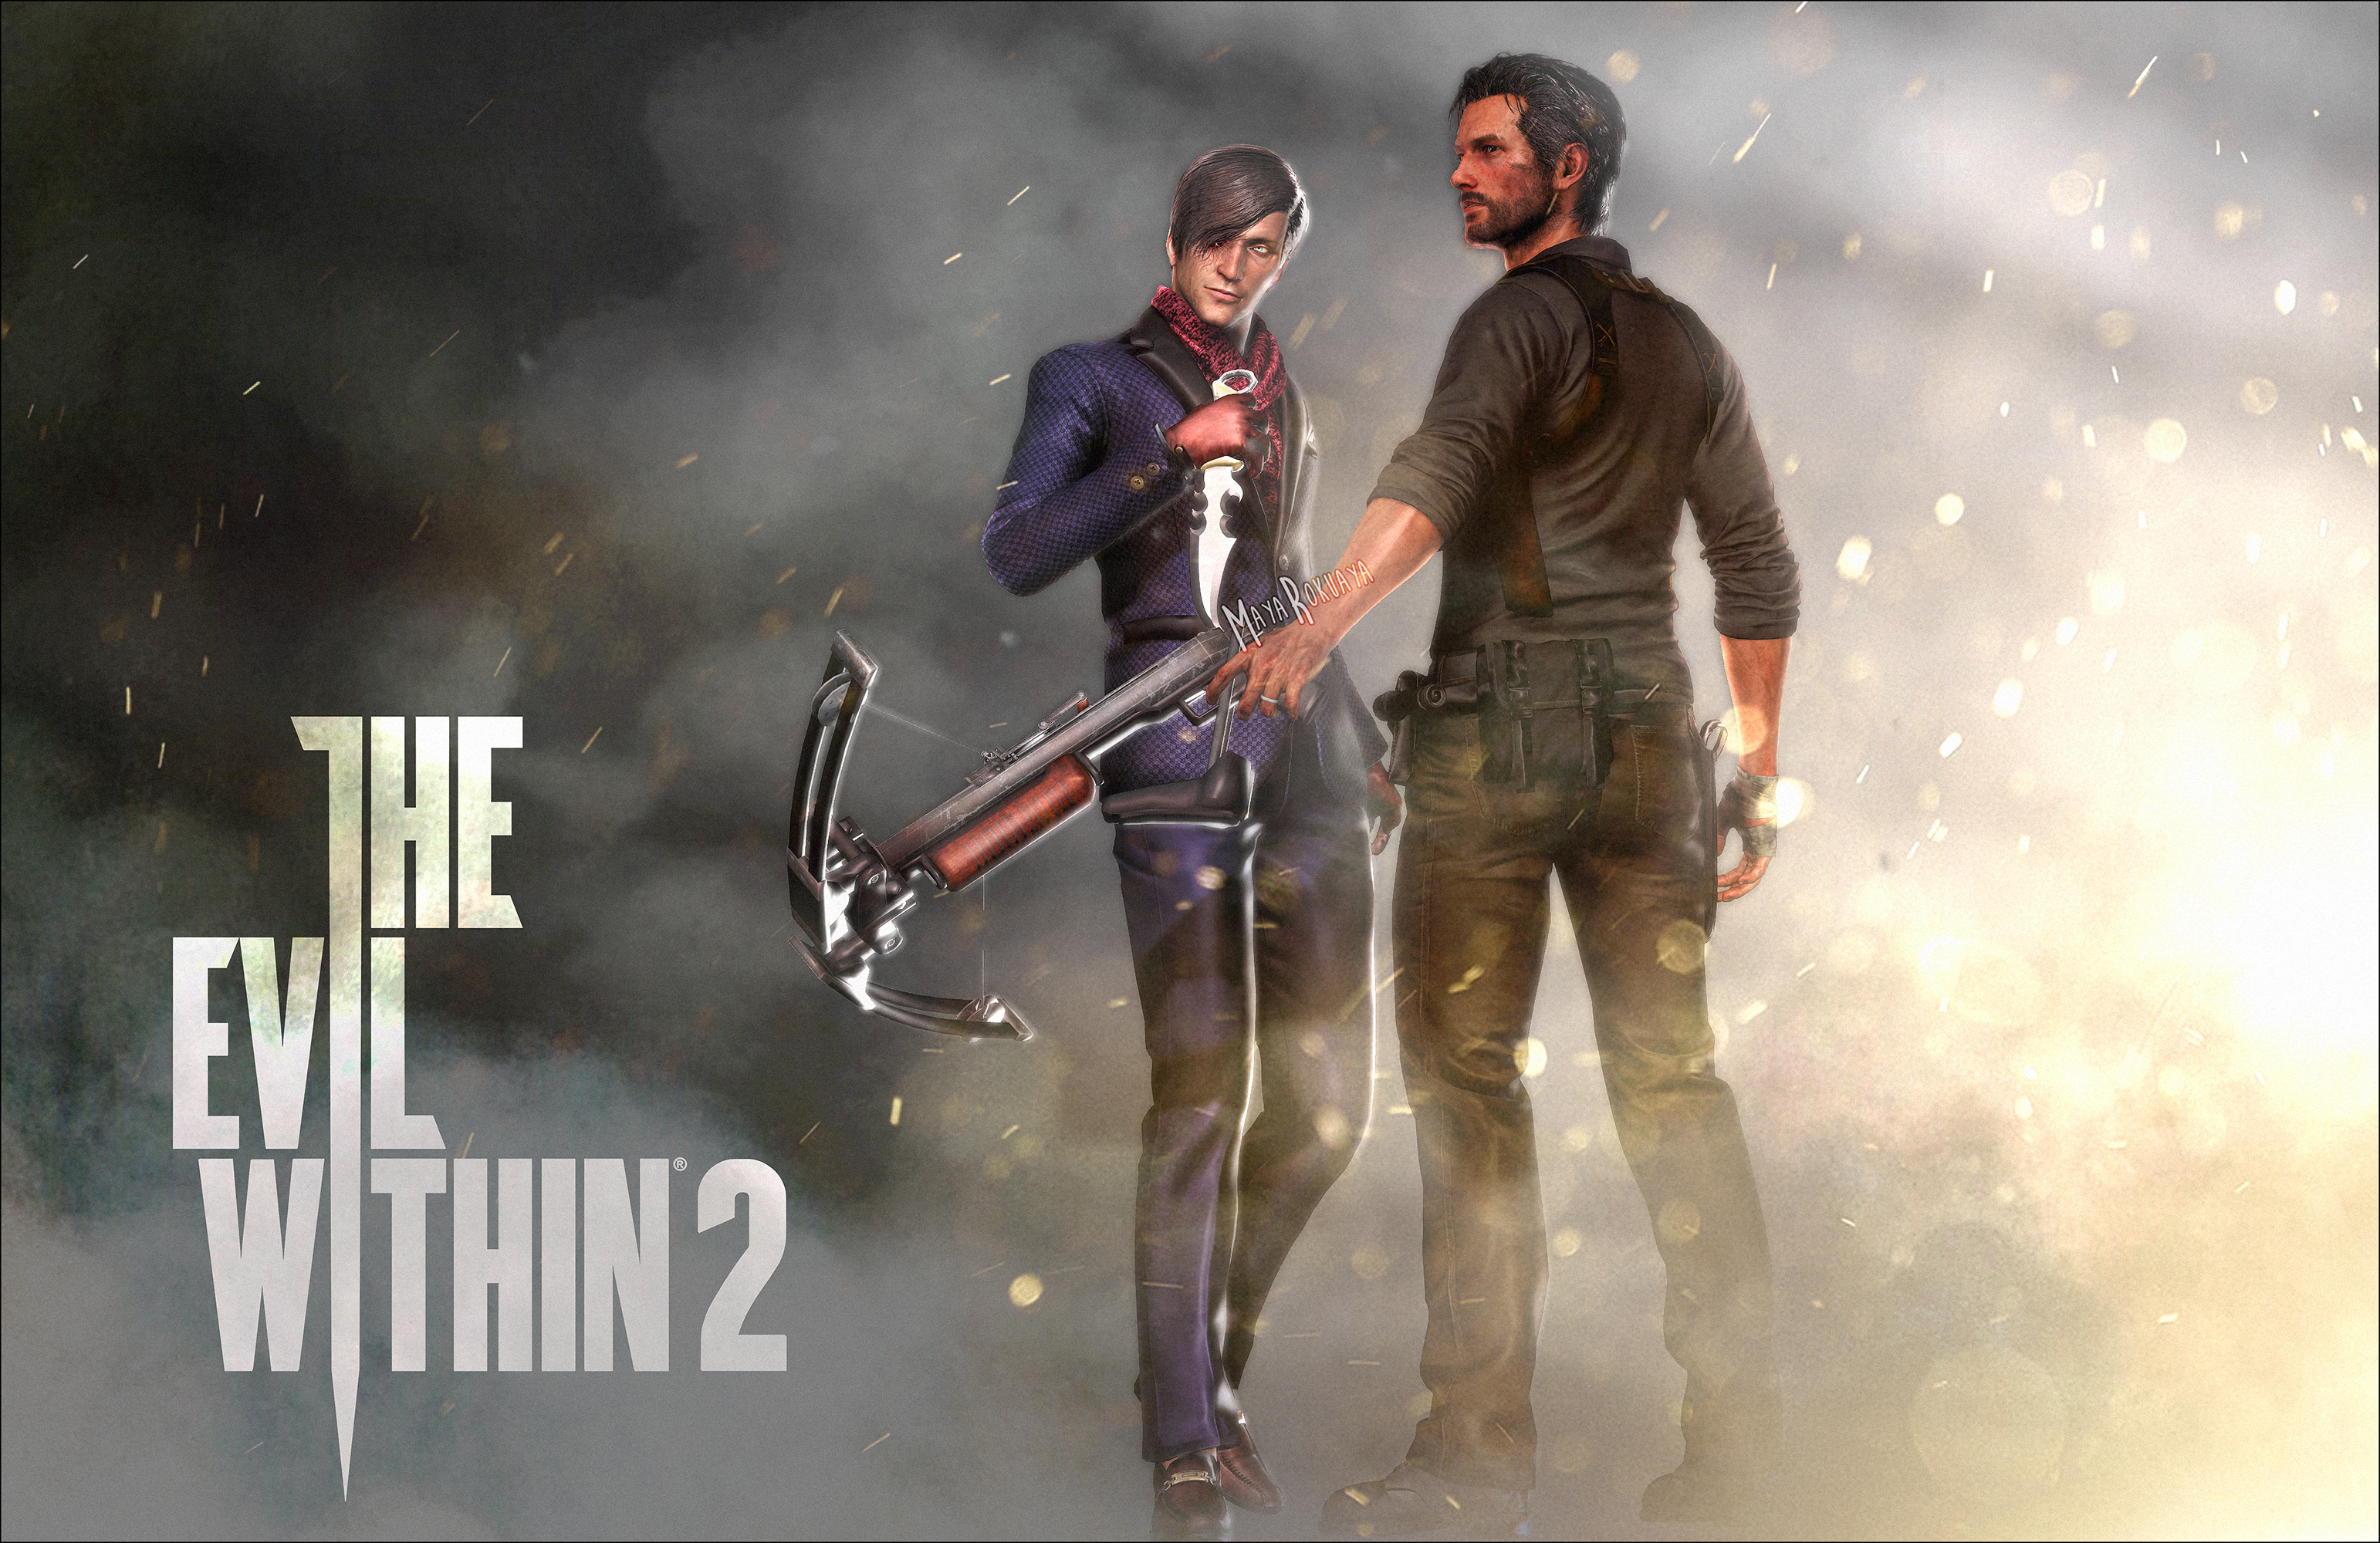 The Evil Within 2 Hd Wallpaper Background Image 3084x2000 Id